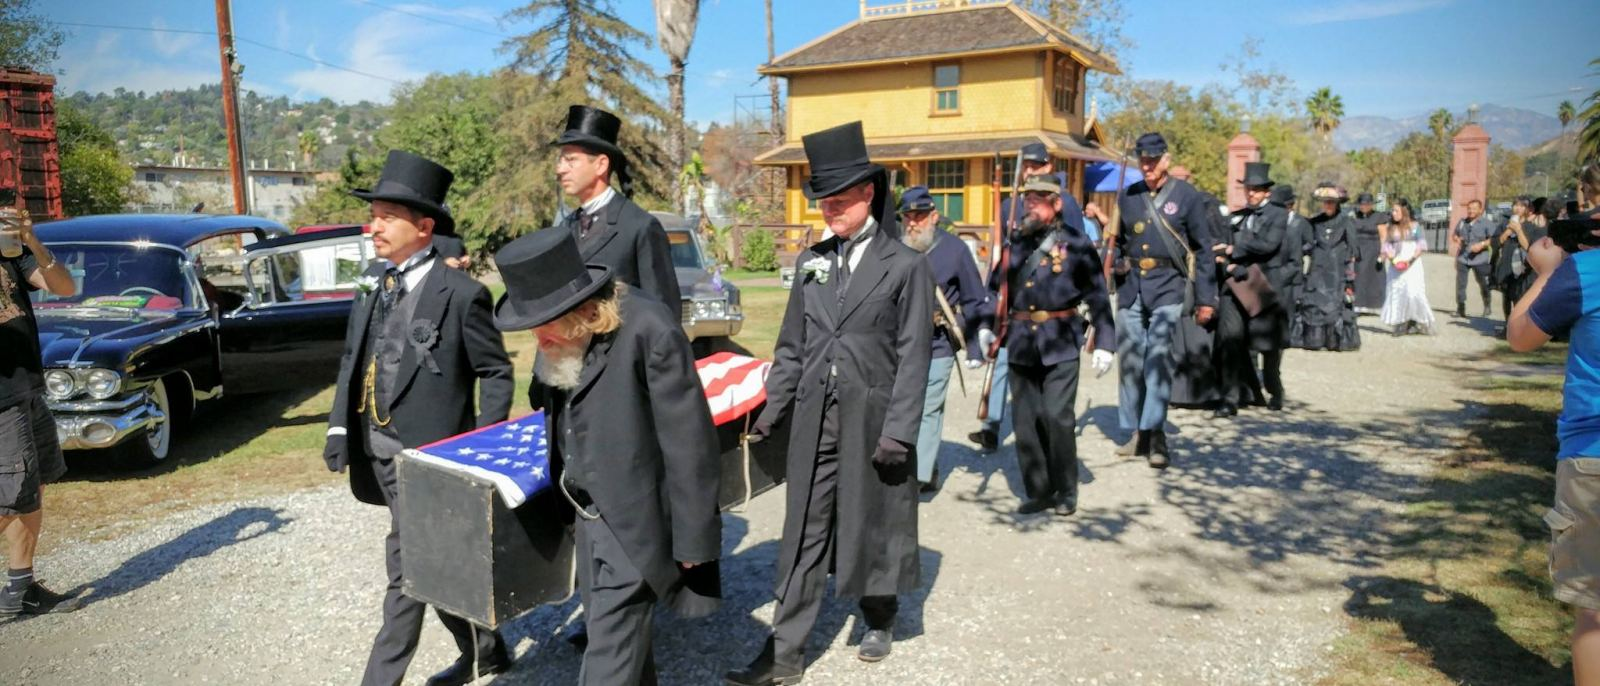 Funeral procession at Halloween & Mourning Tours | Photo: Heritage Square Museum, Facebook